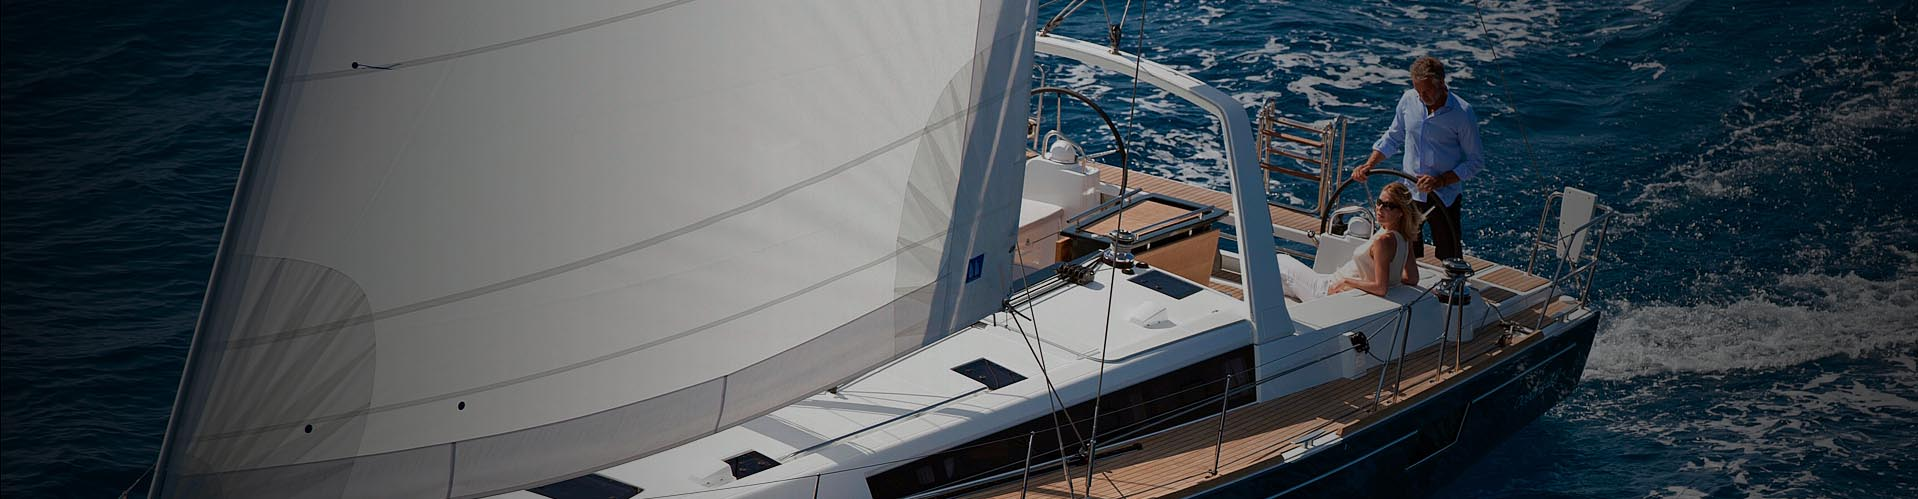 Beneteau, Jeanneau, Bavaria, Dufour, Elan, Salona, Hanse and more...